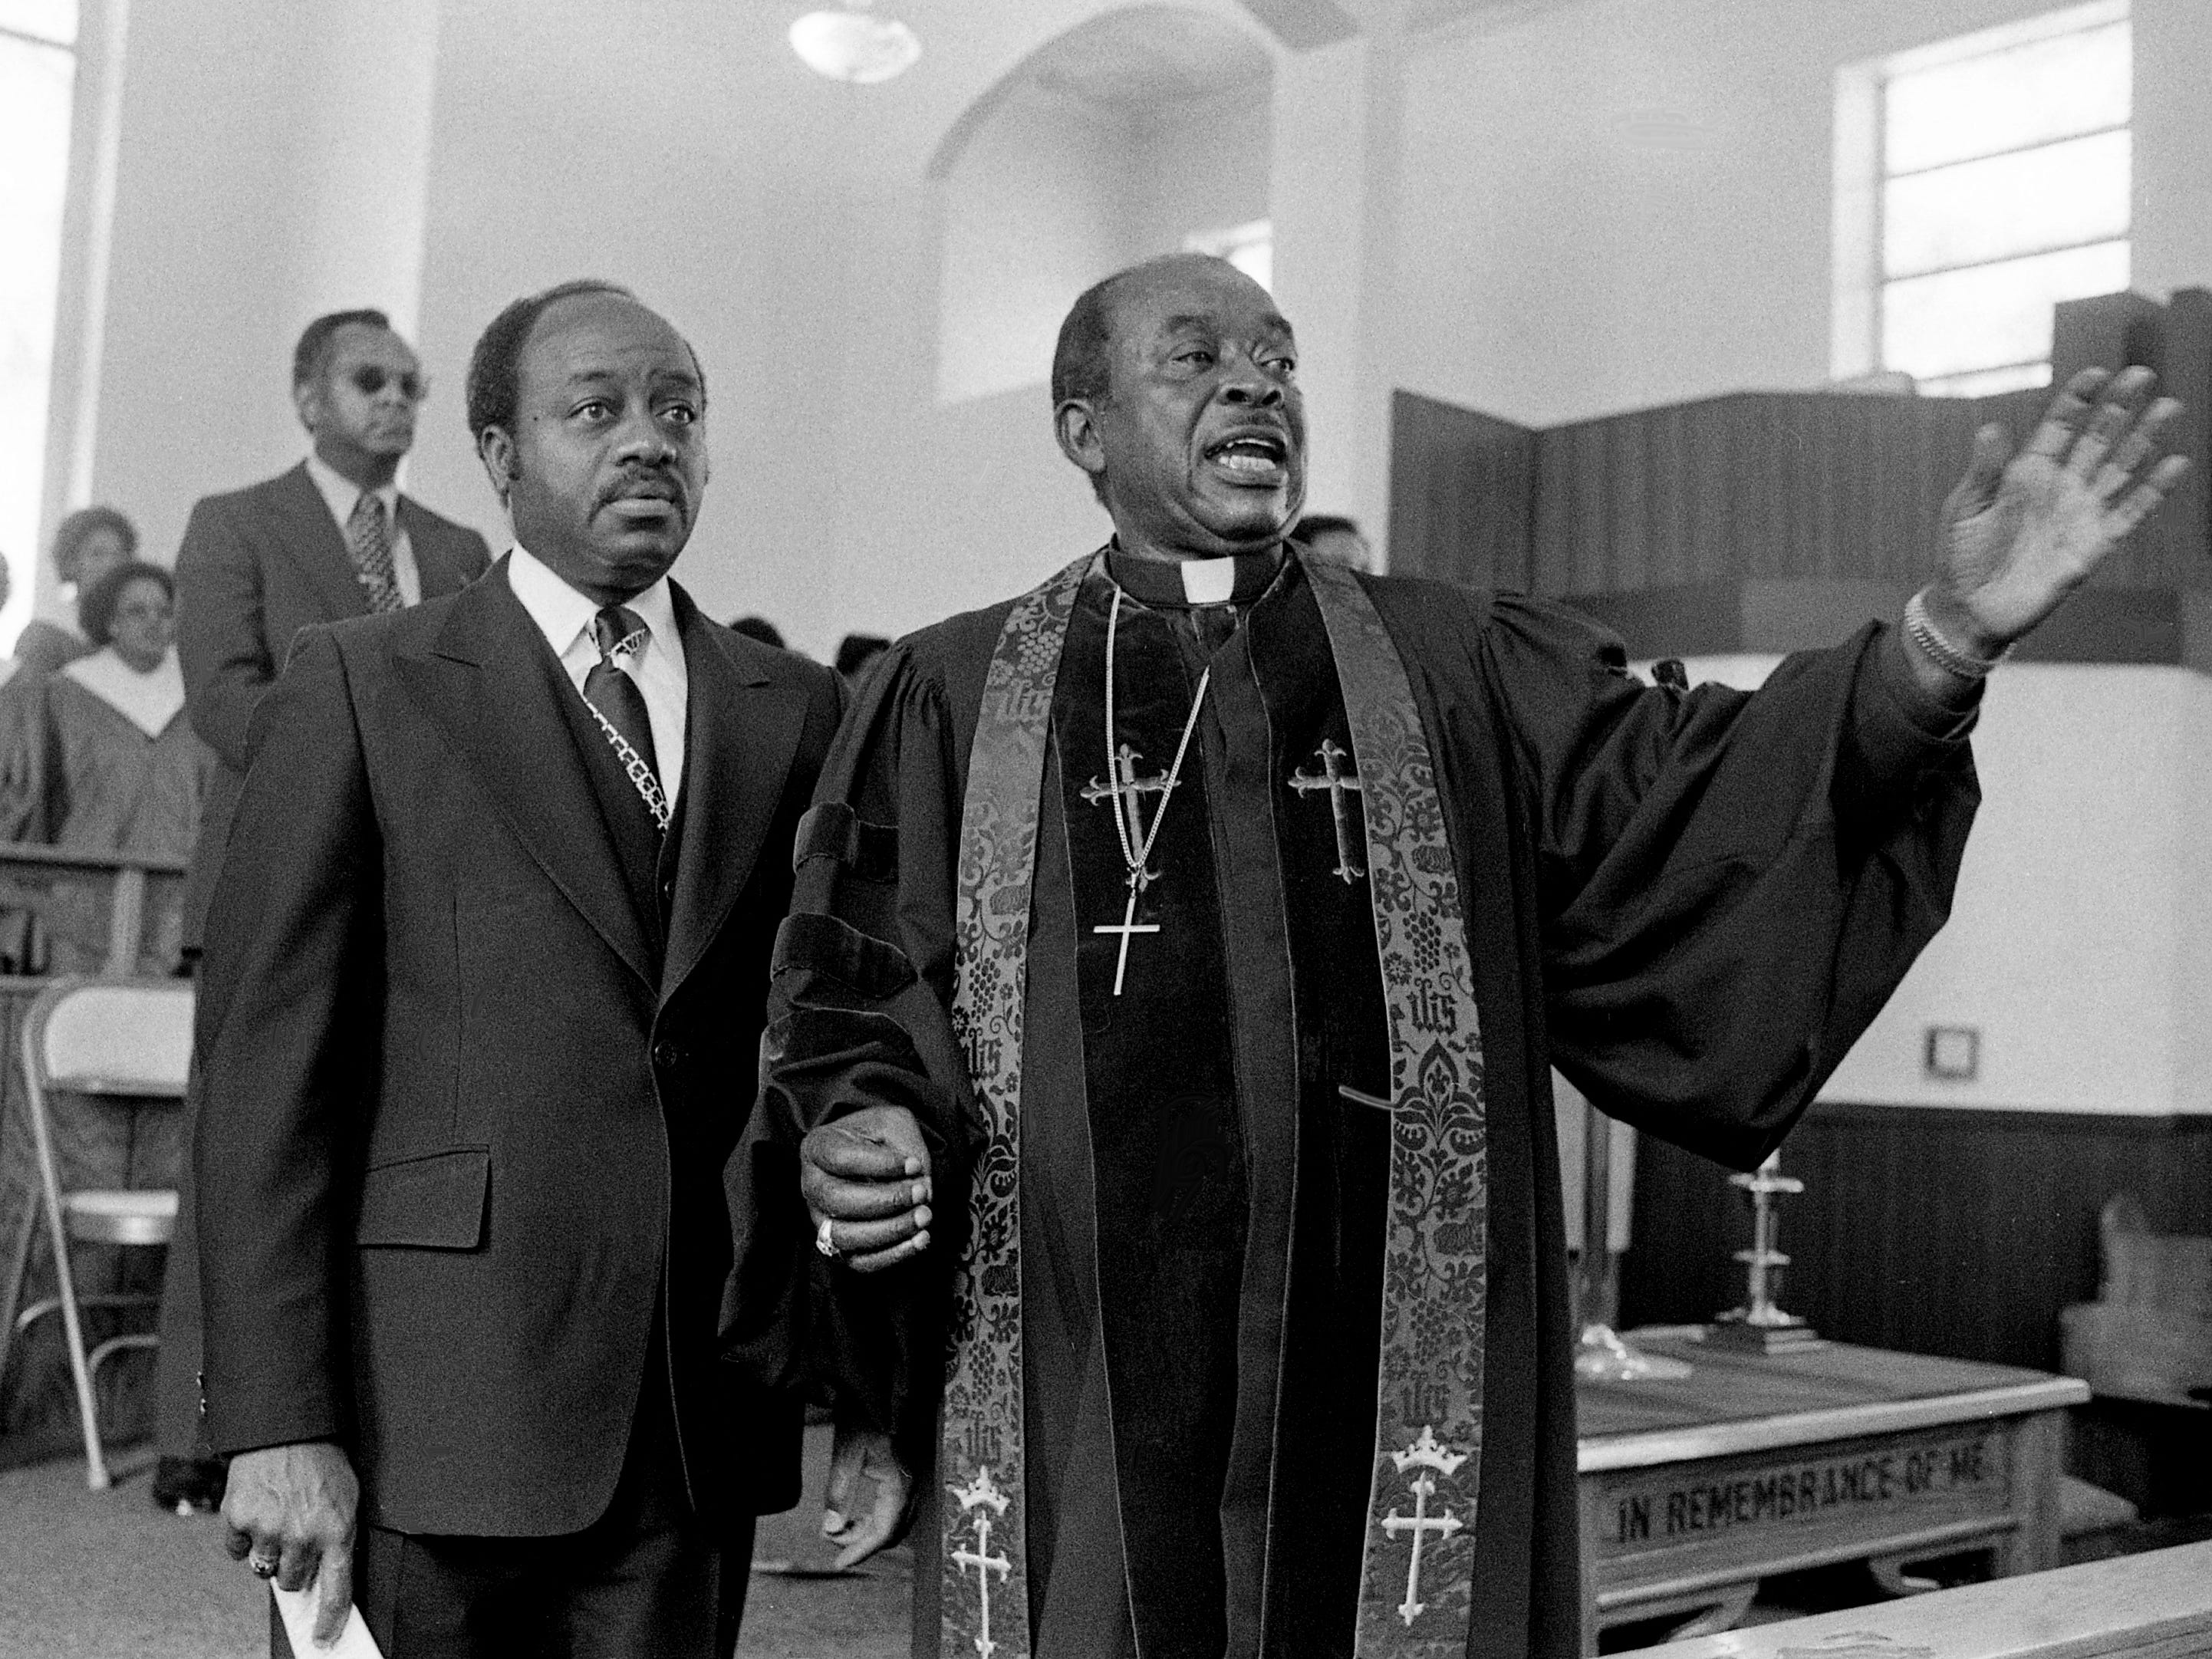 """Bishop William F. Ball, right, presiding bishop of the 18th Episcopal District of the AME Church, gives the """"Invitation to Discipleship"""" at the Lee Chapel AME Church as the church's Rev. Charles A. Jones looks on Feb. 11, 1979."""